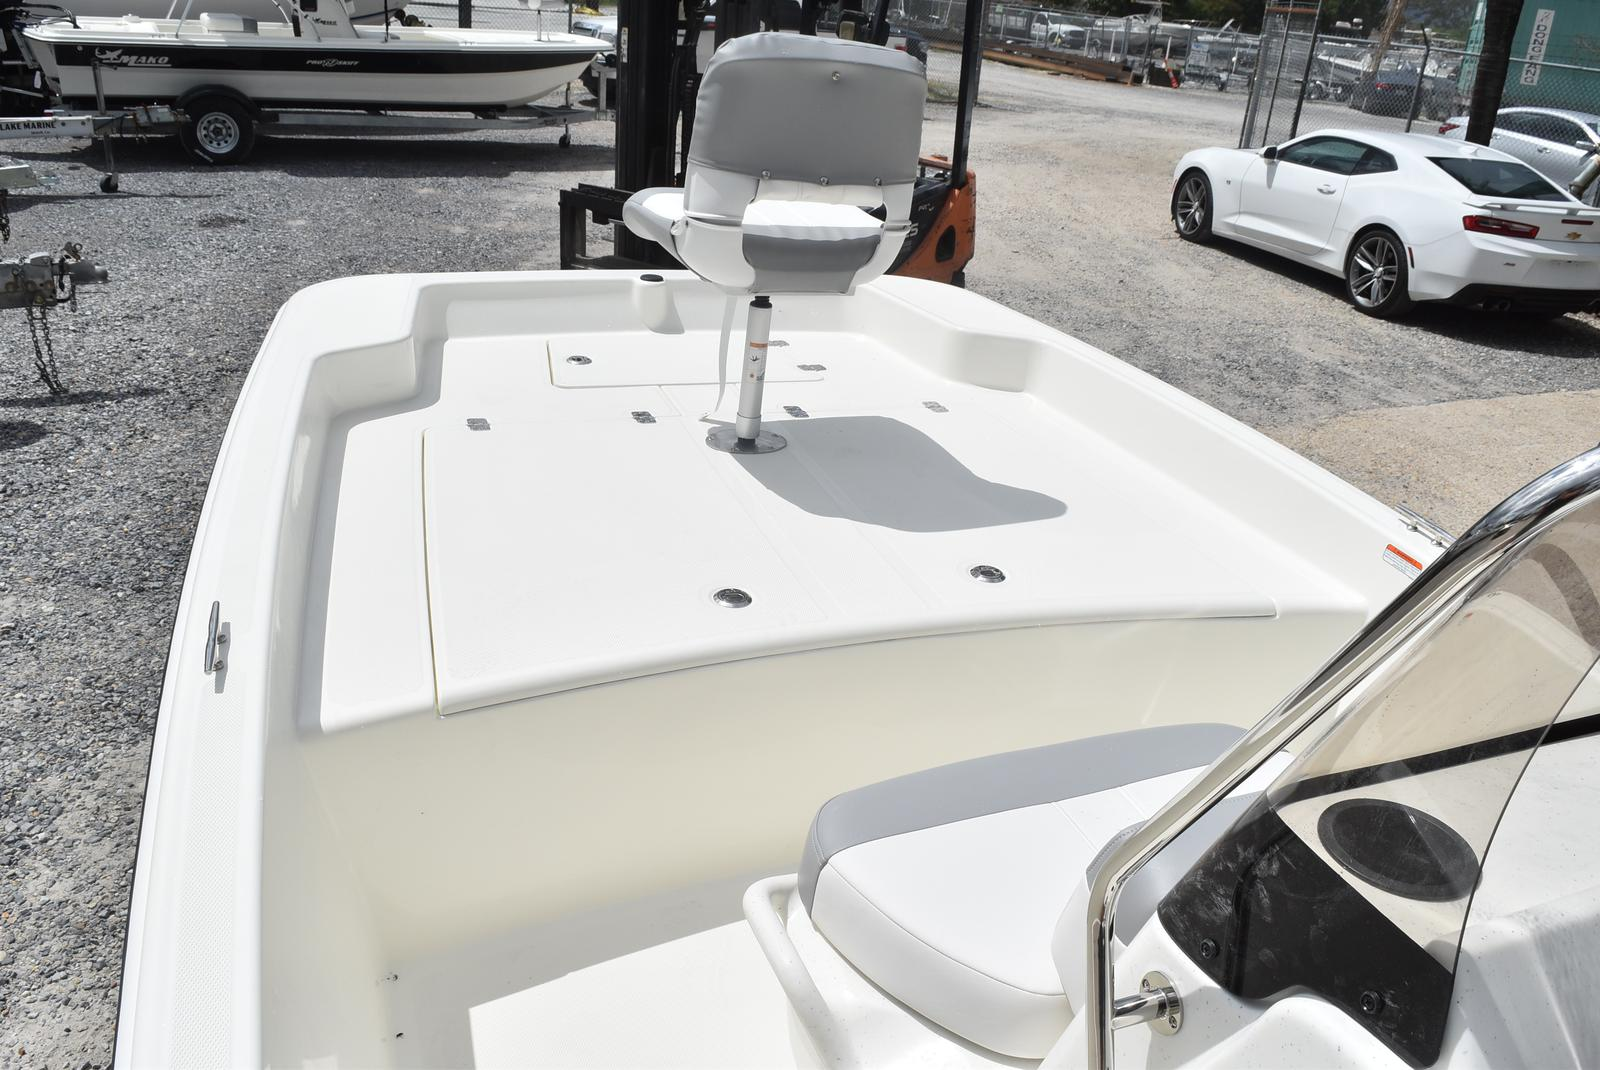 2020 Mako boat for sale, model of the boat is Pro Skiff 17, 75 ELPT & Image # 443 of 702